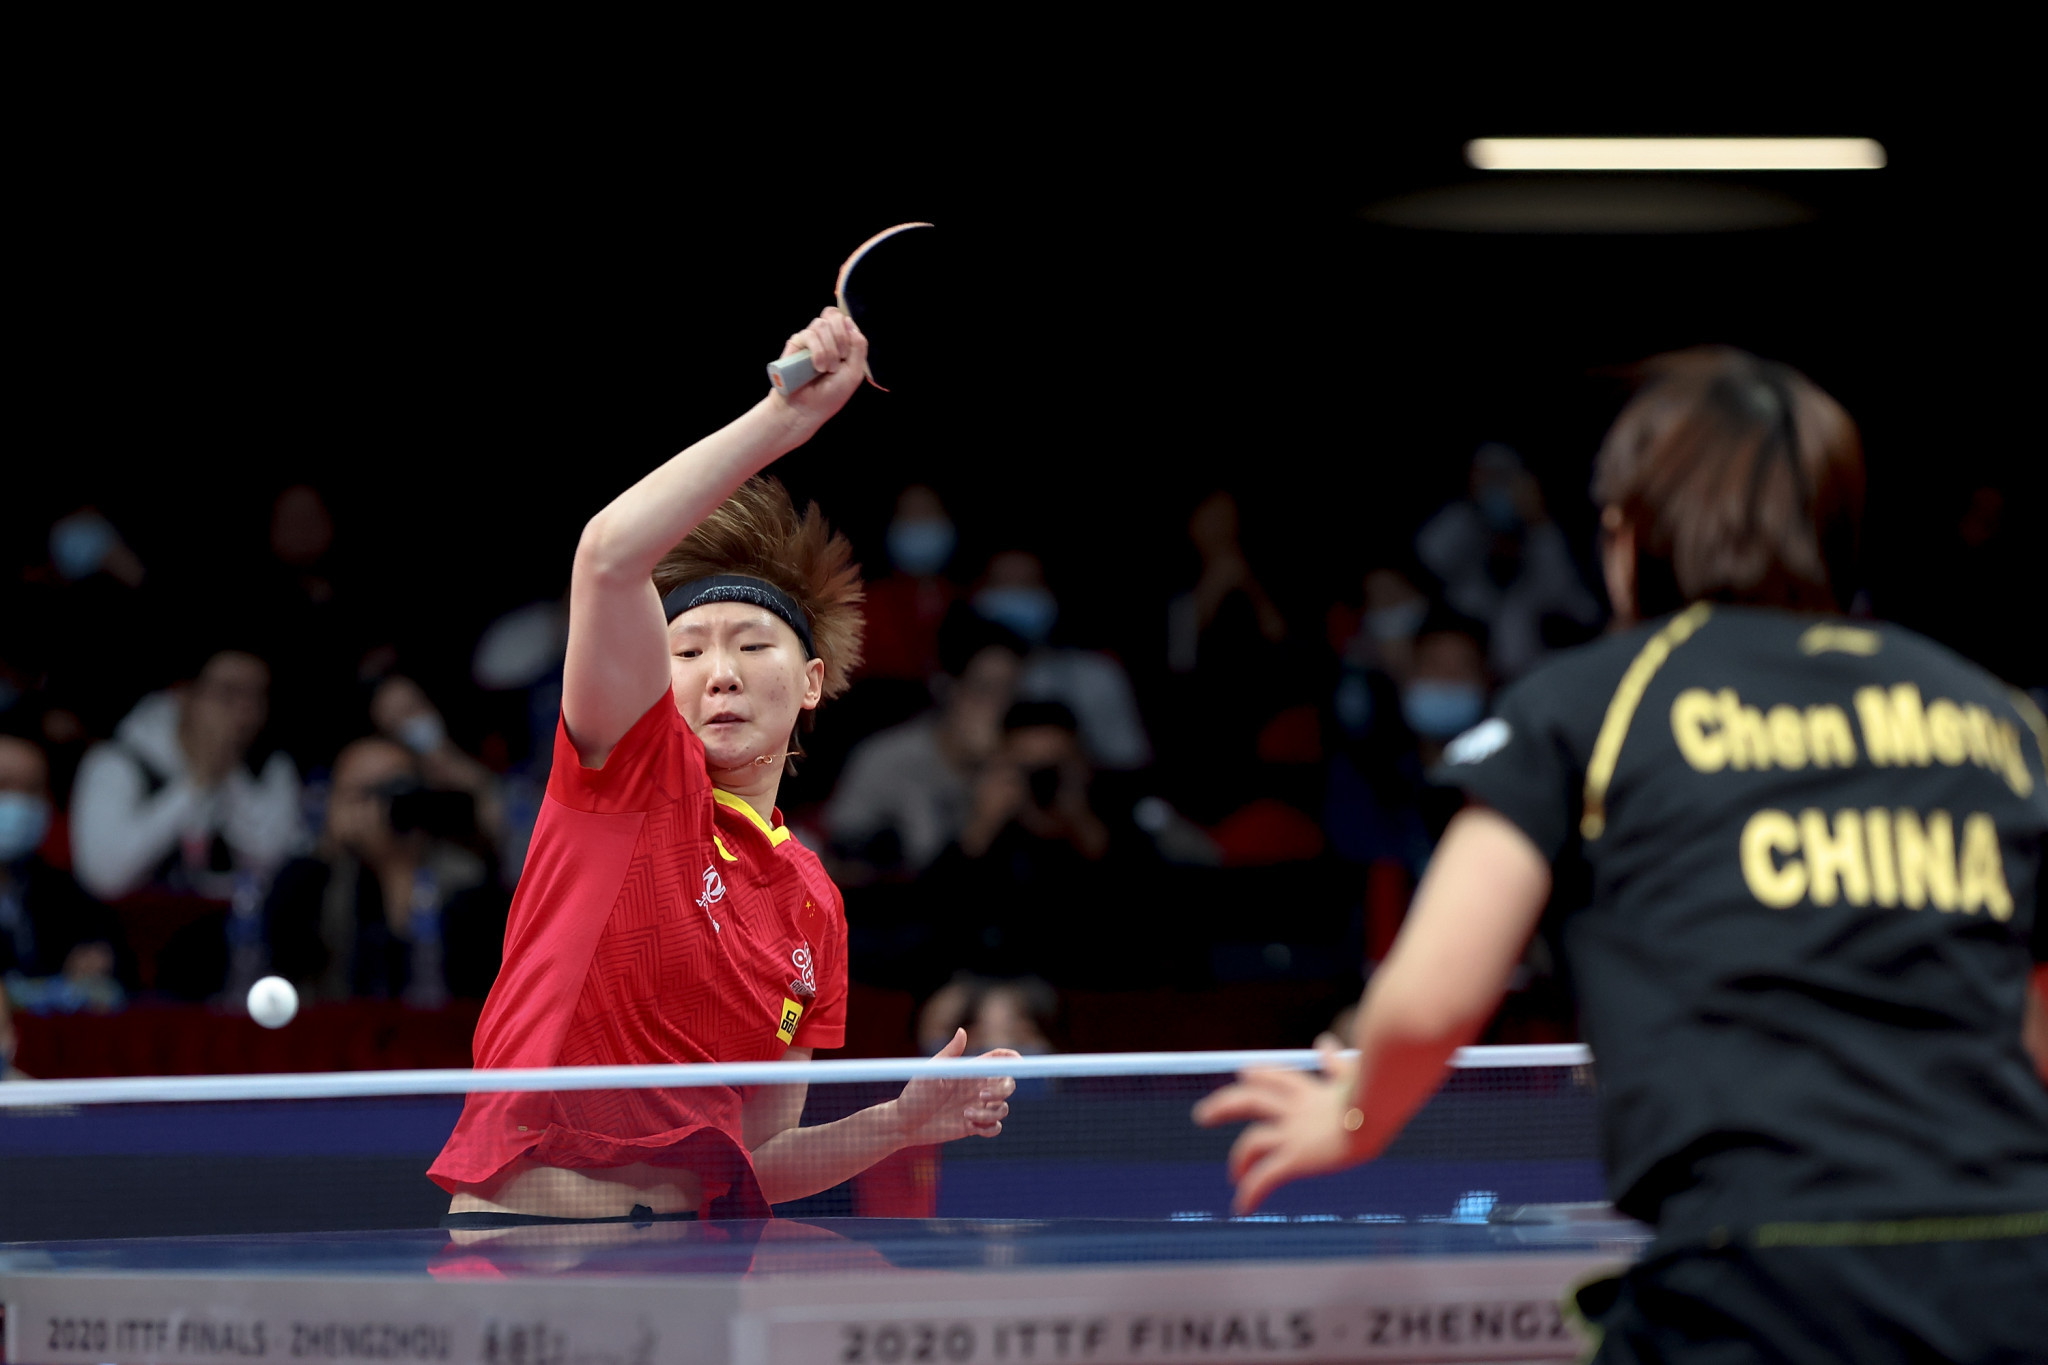 """#RESTART series described as """"one of the most important things"""" achieved by ITTF"""